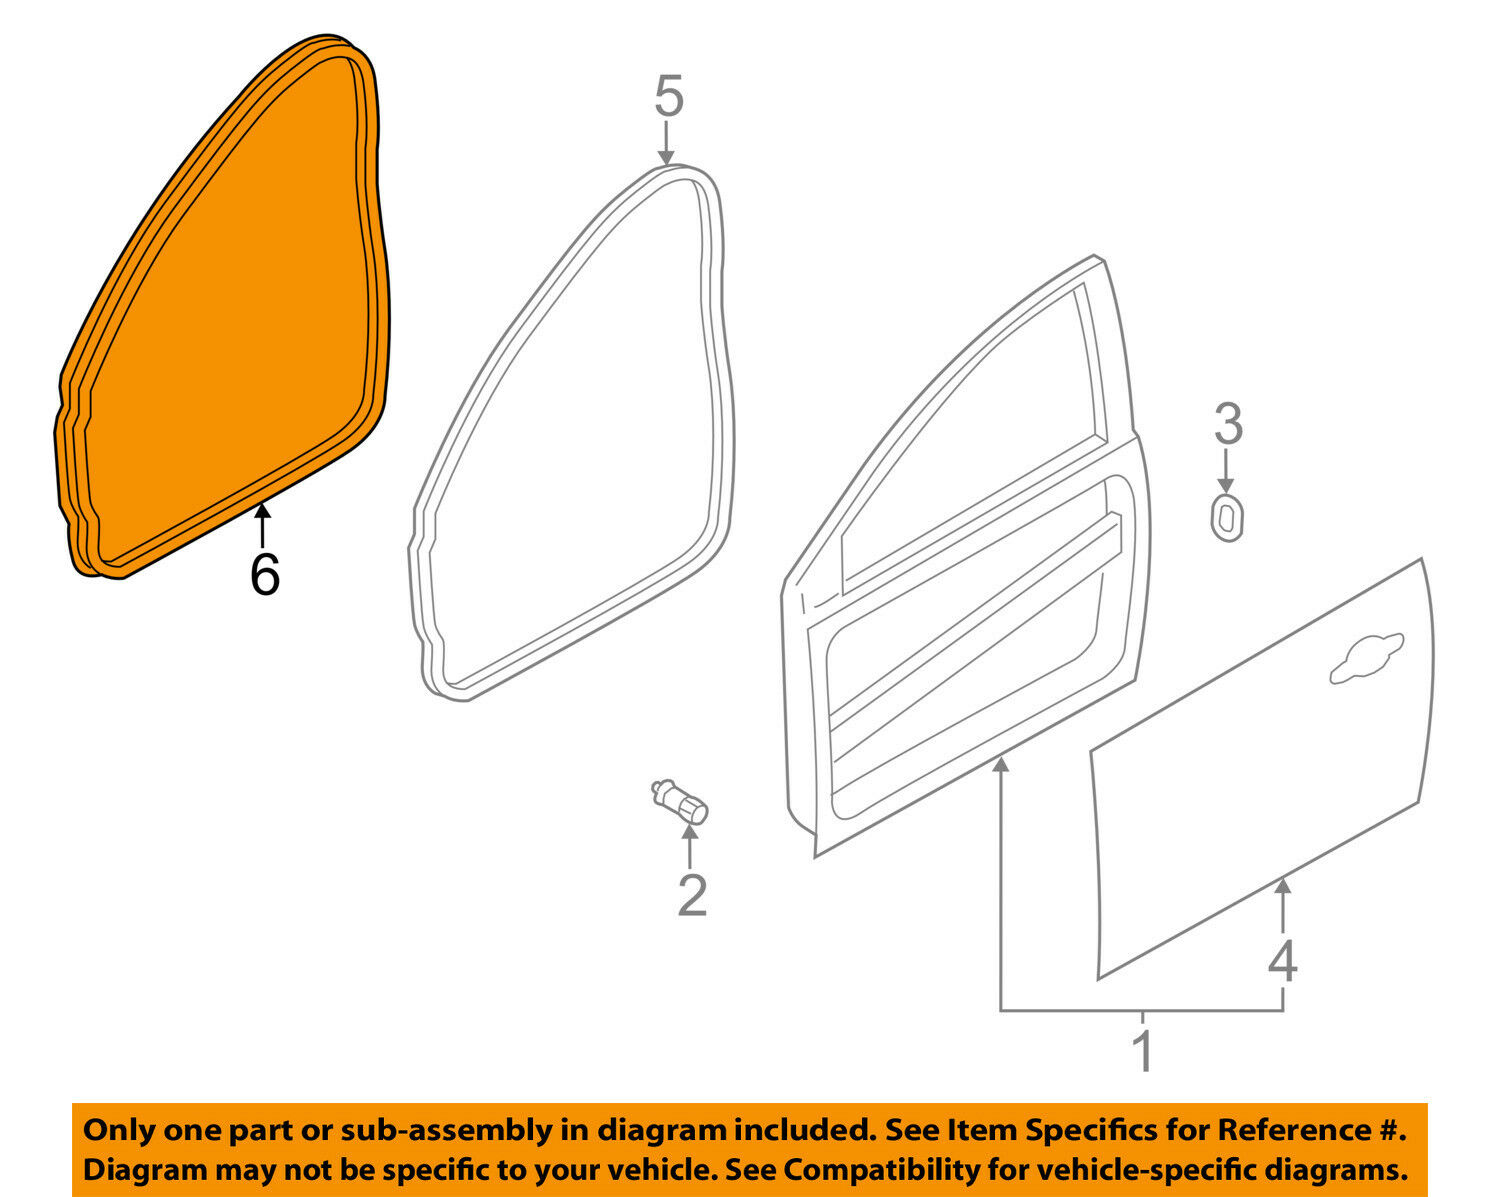 Ford Focus Door Parts Diagram Electrical Wiring Diagrams 2004 Expedition Front Body Schematics U2022 Engine